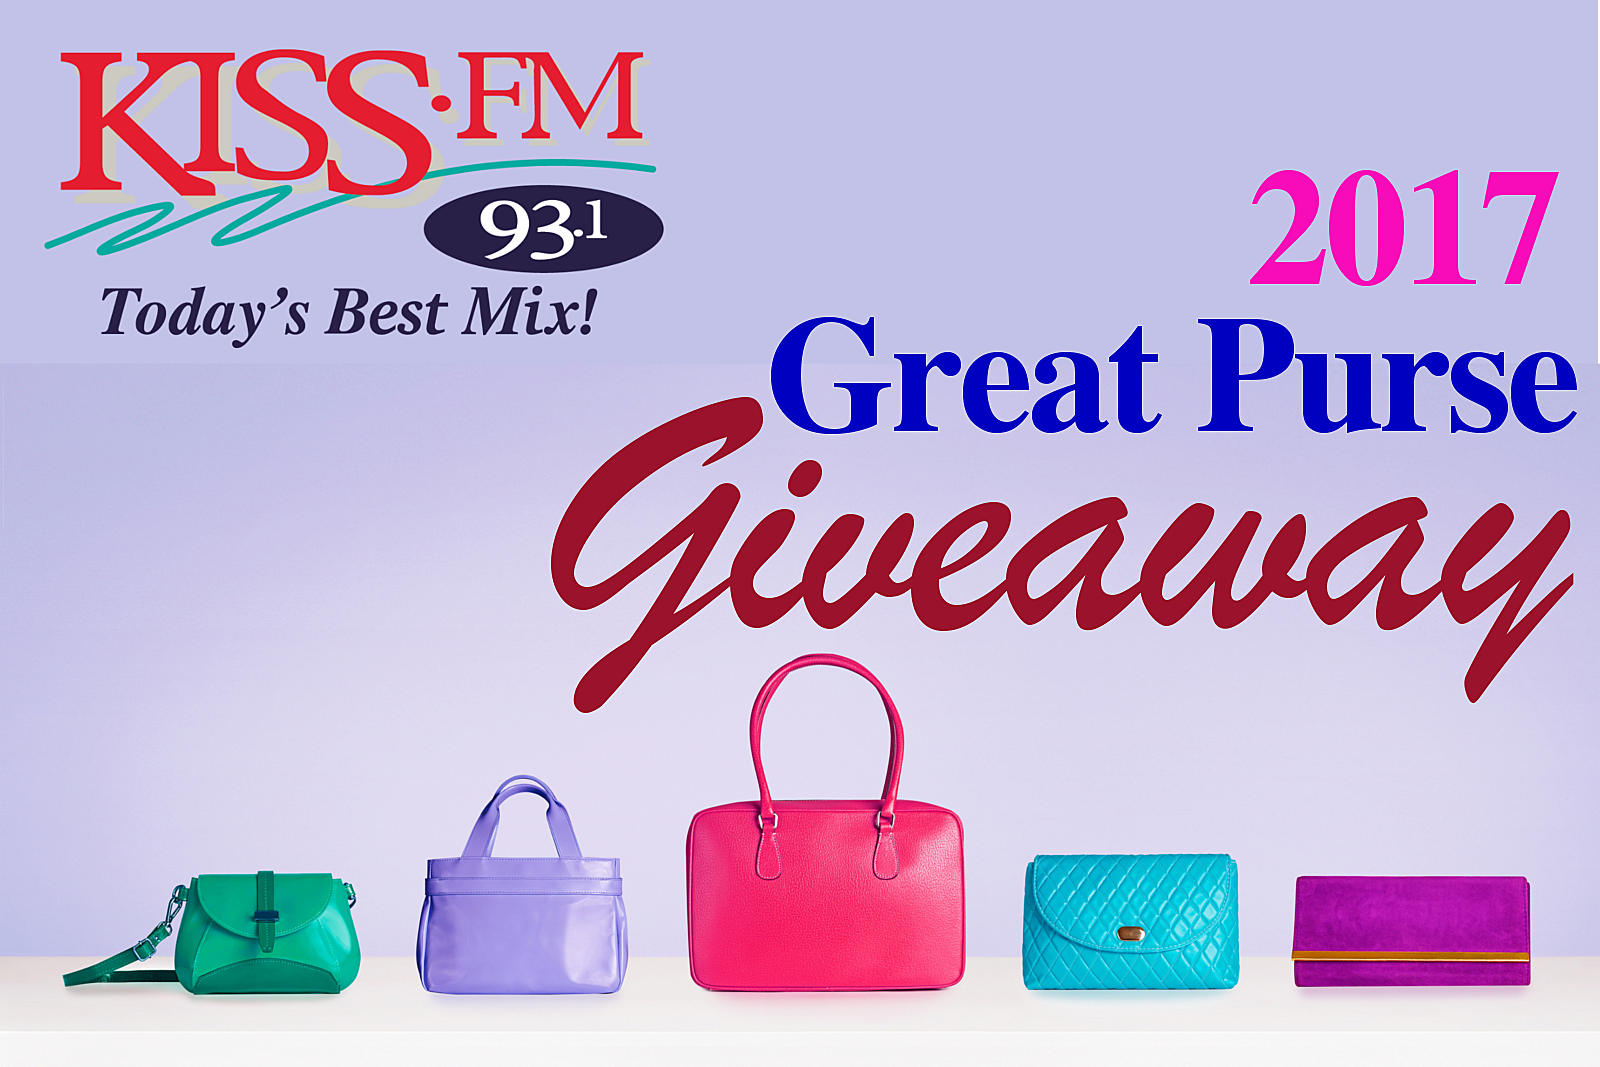 KISS FM GREAT PURSE GIVEAWAY